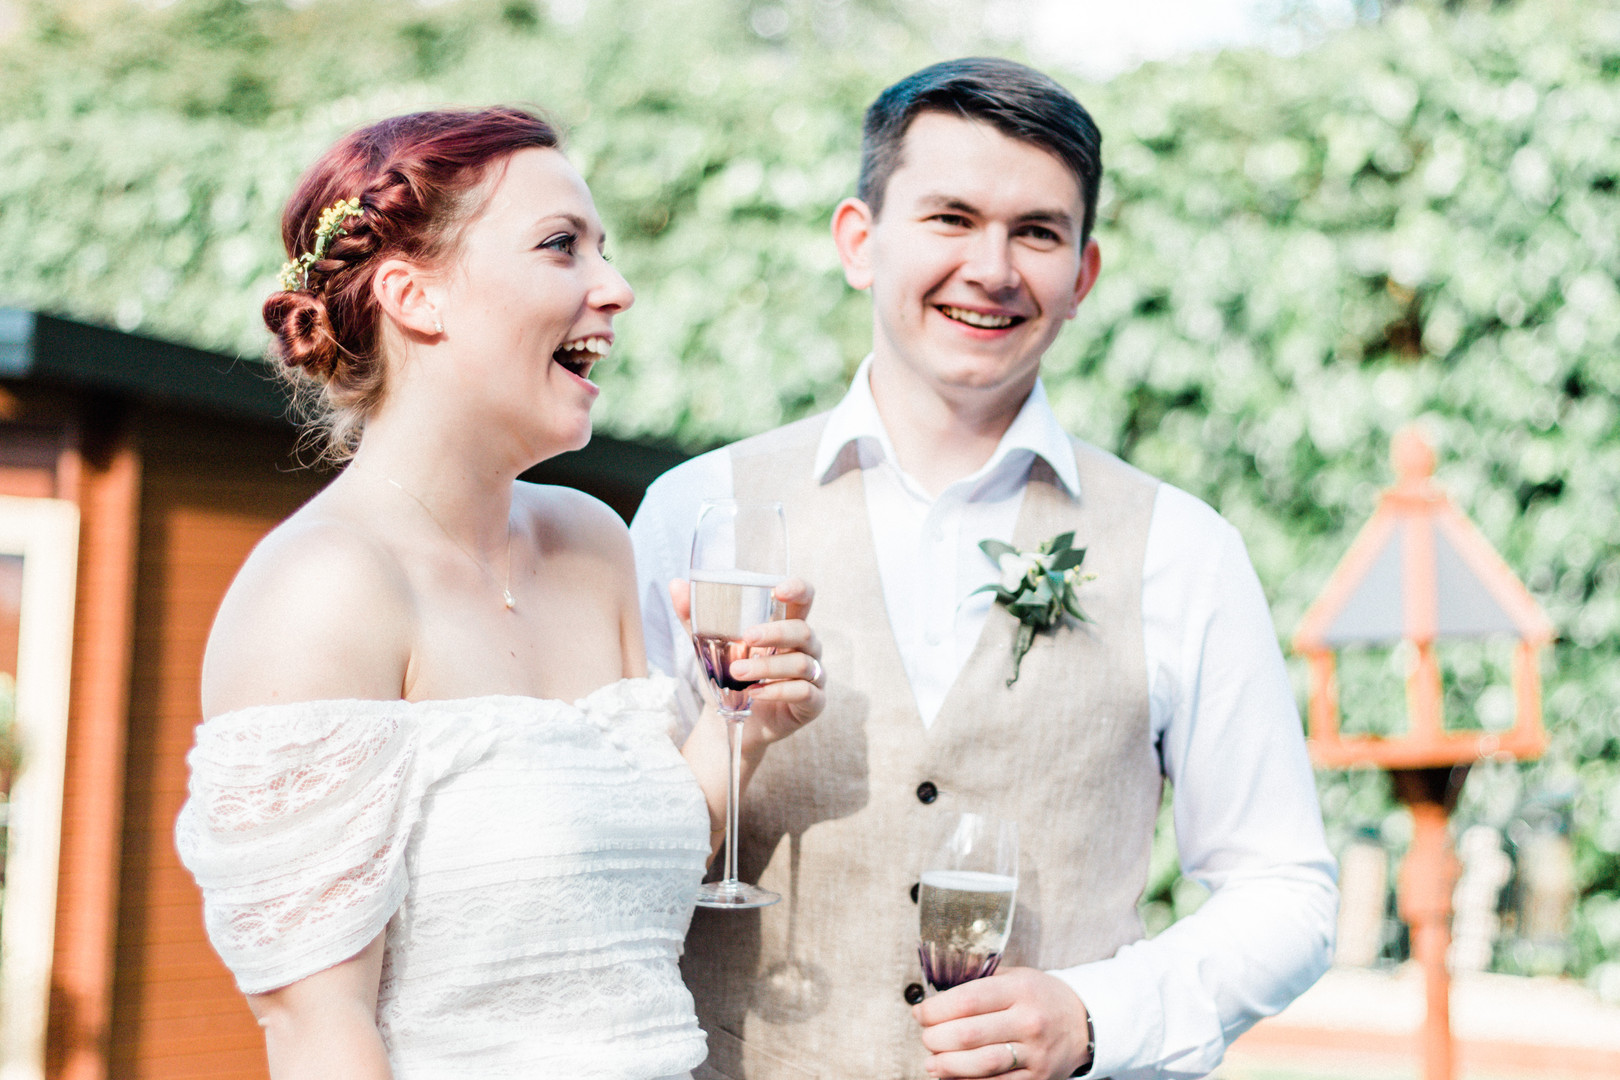 Hampshire documentary wedding photo of laughing bride and groom